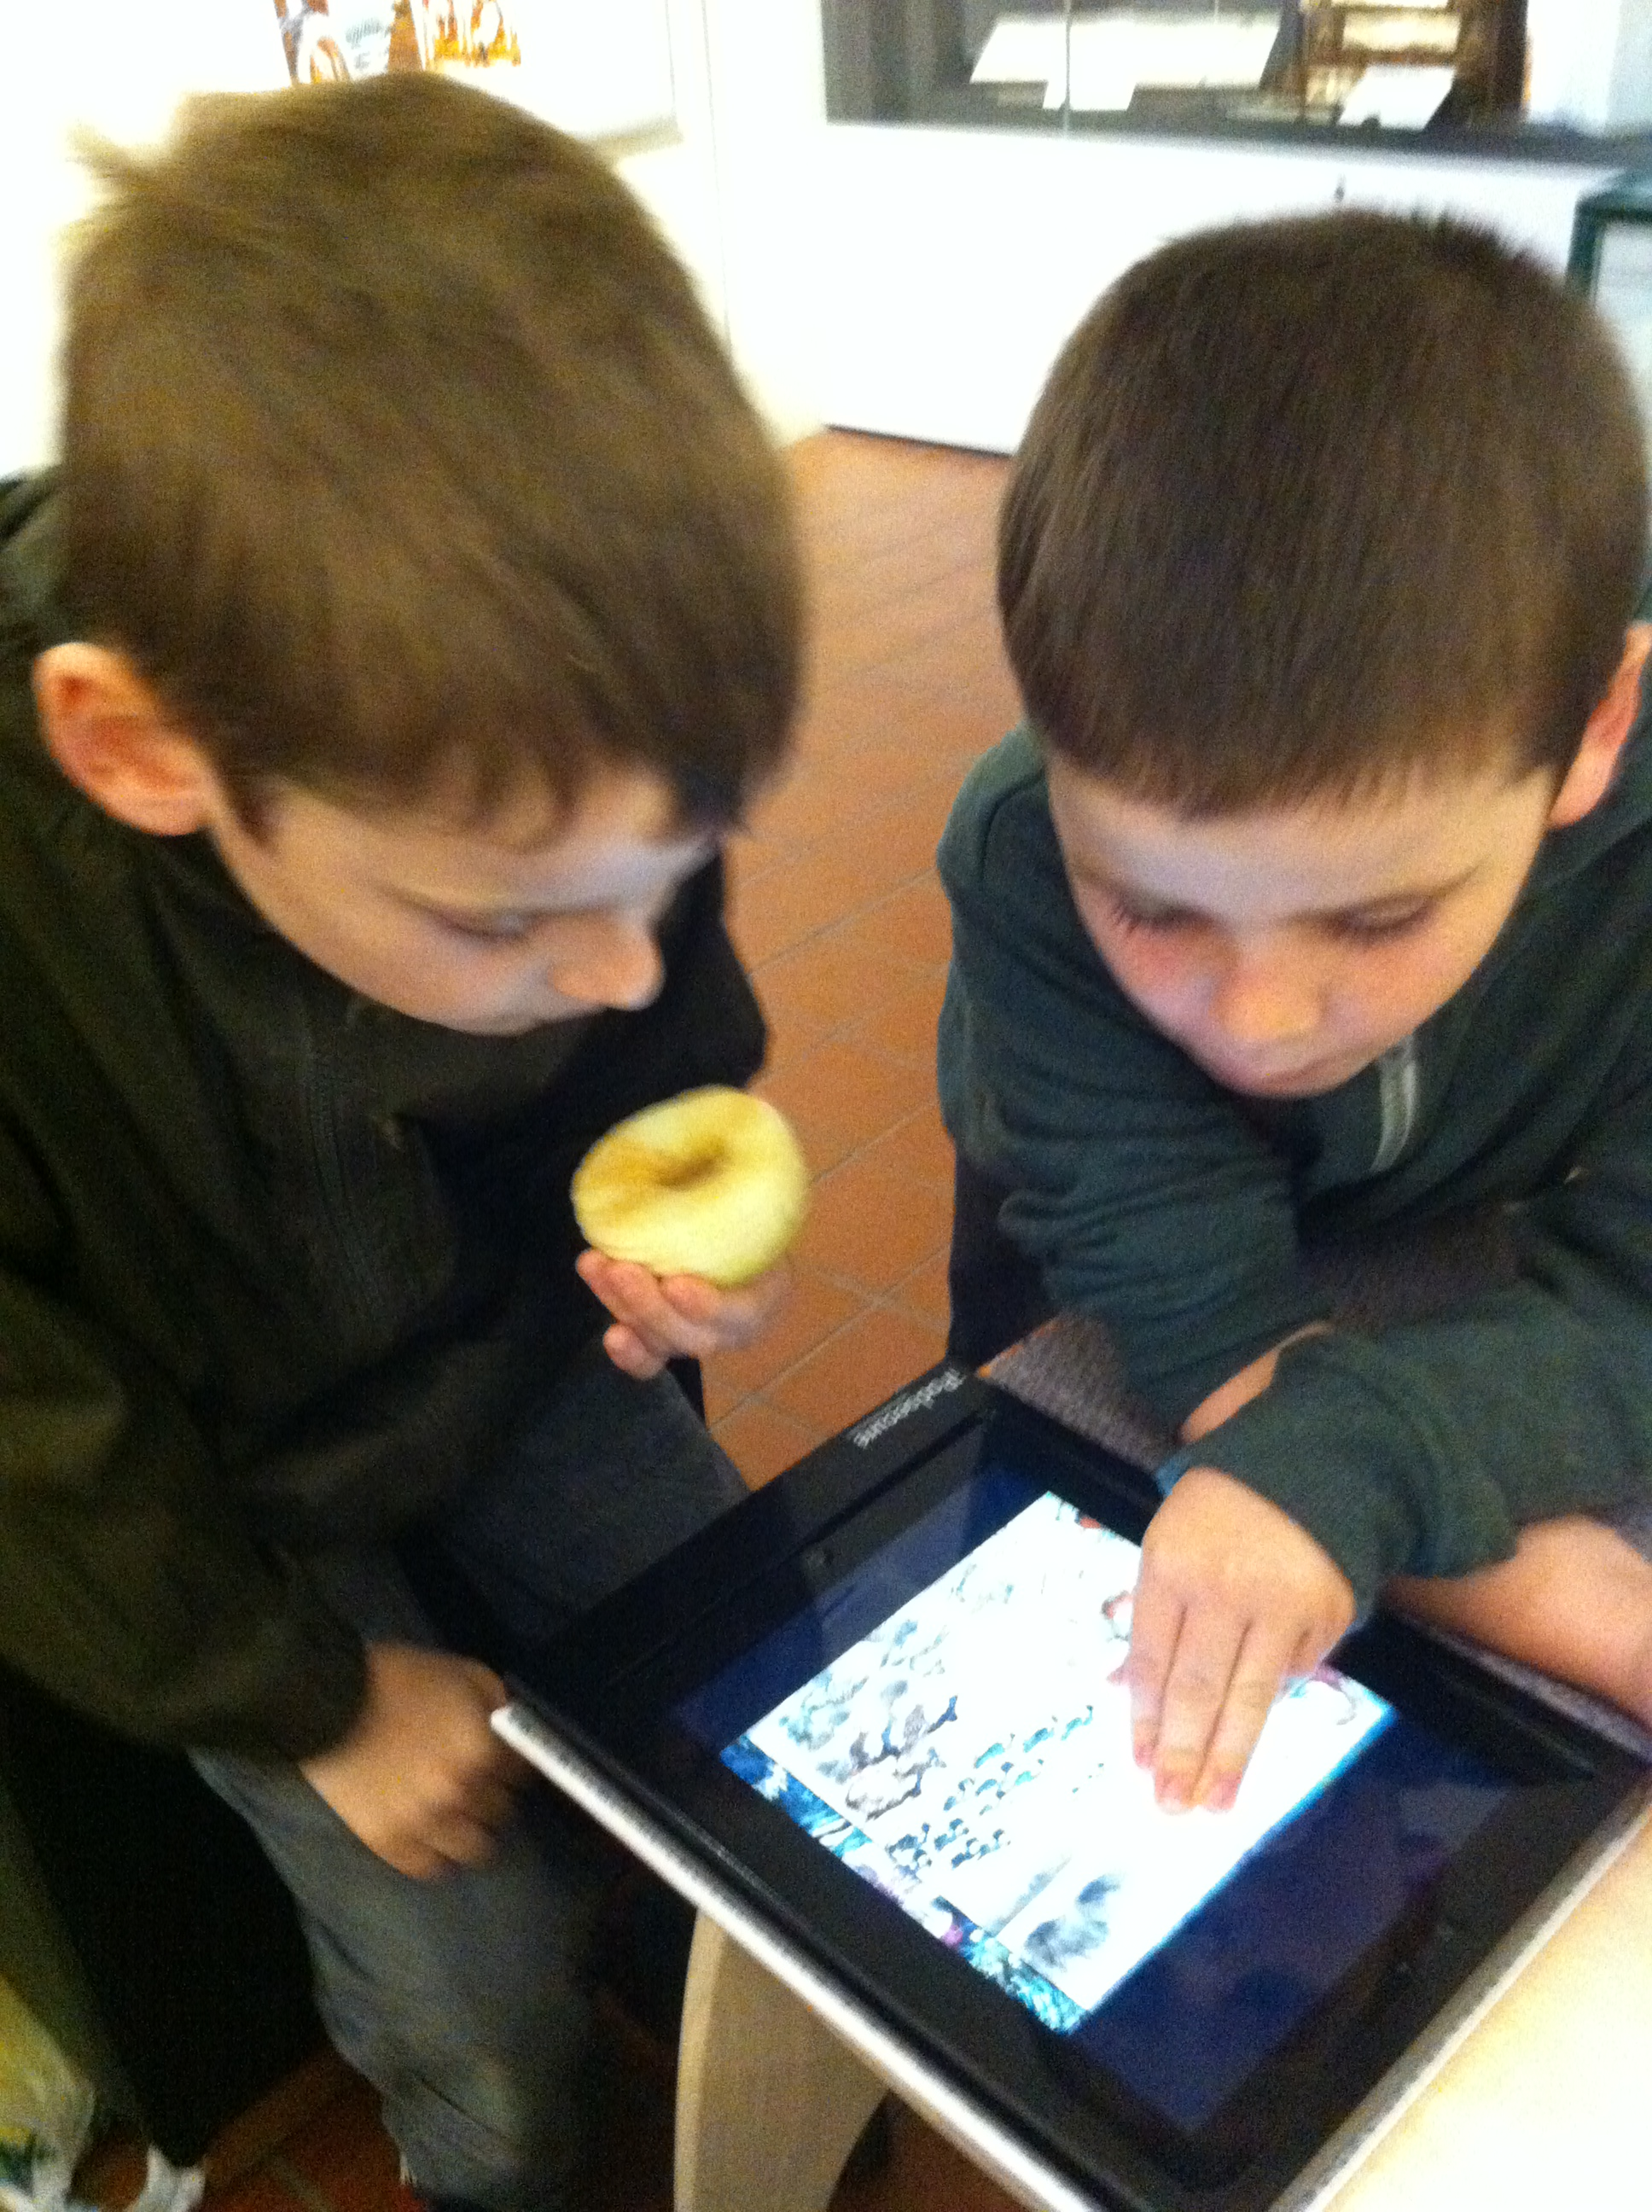 two boys using an ipad together